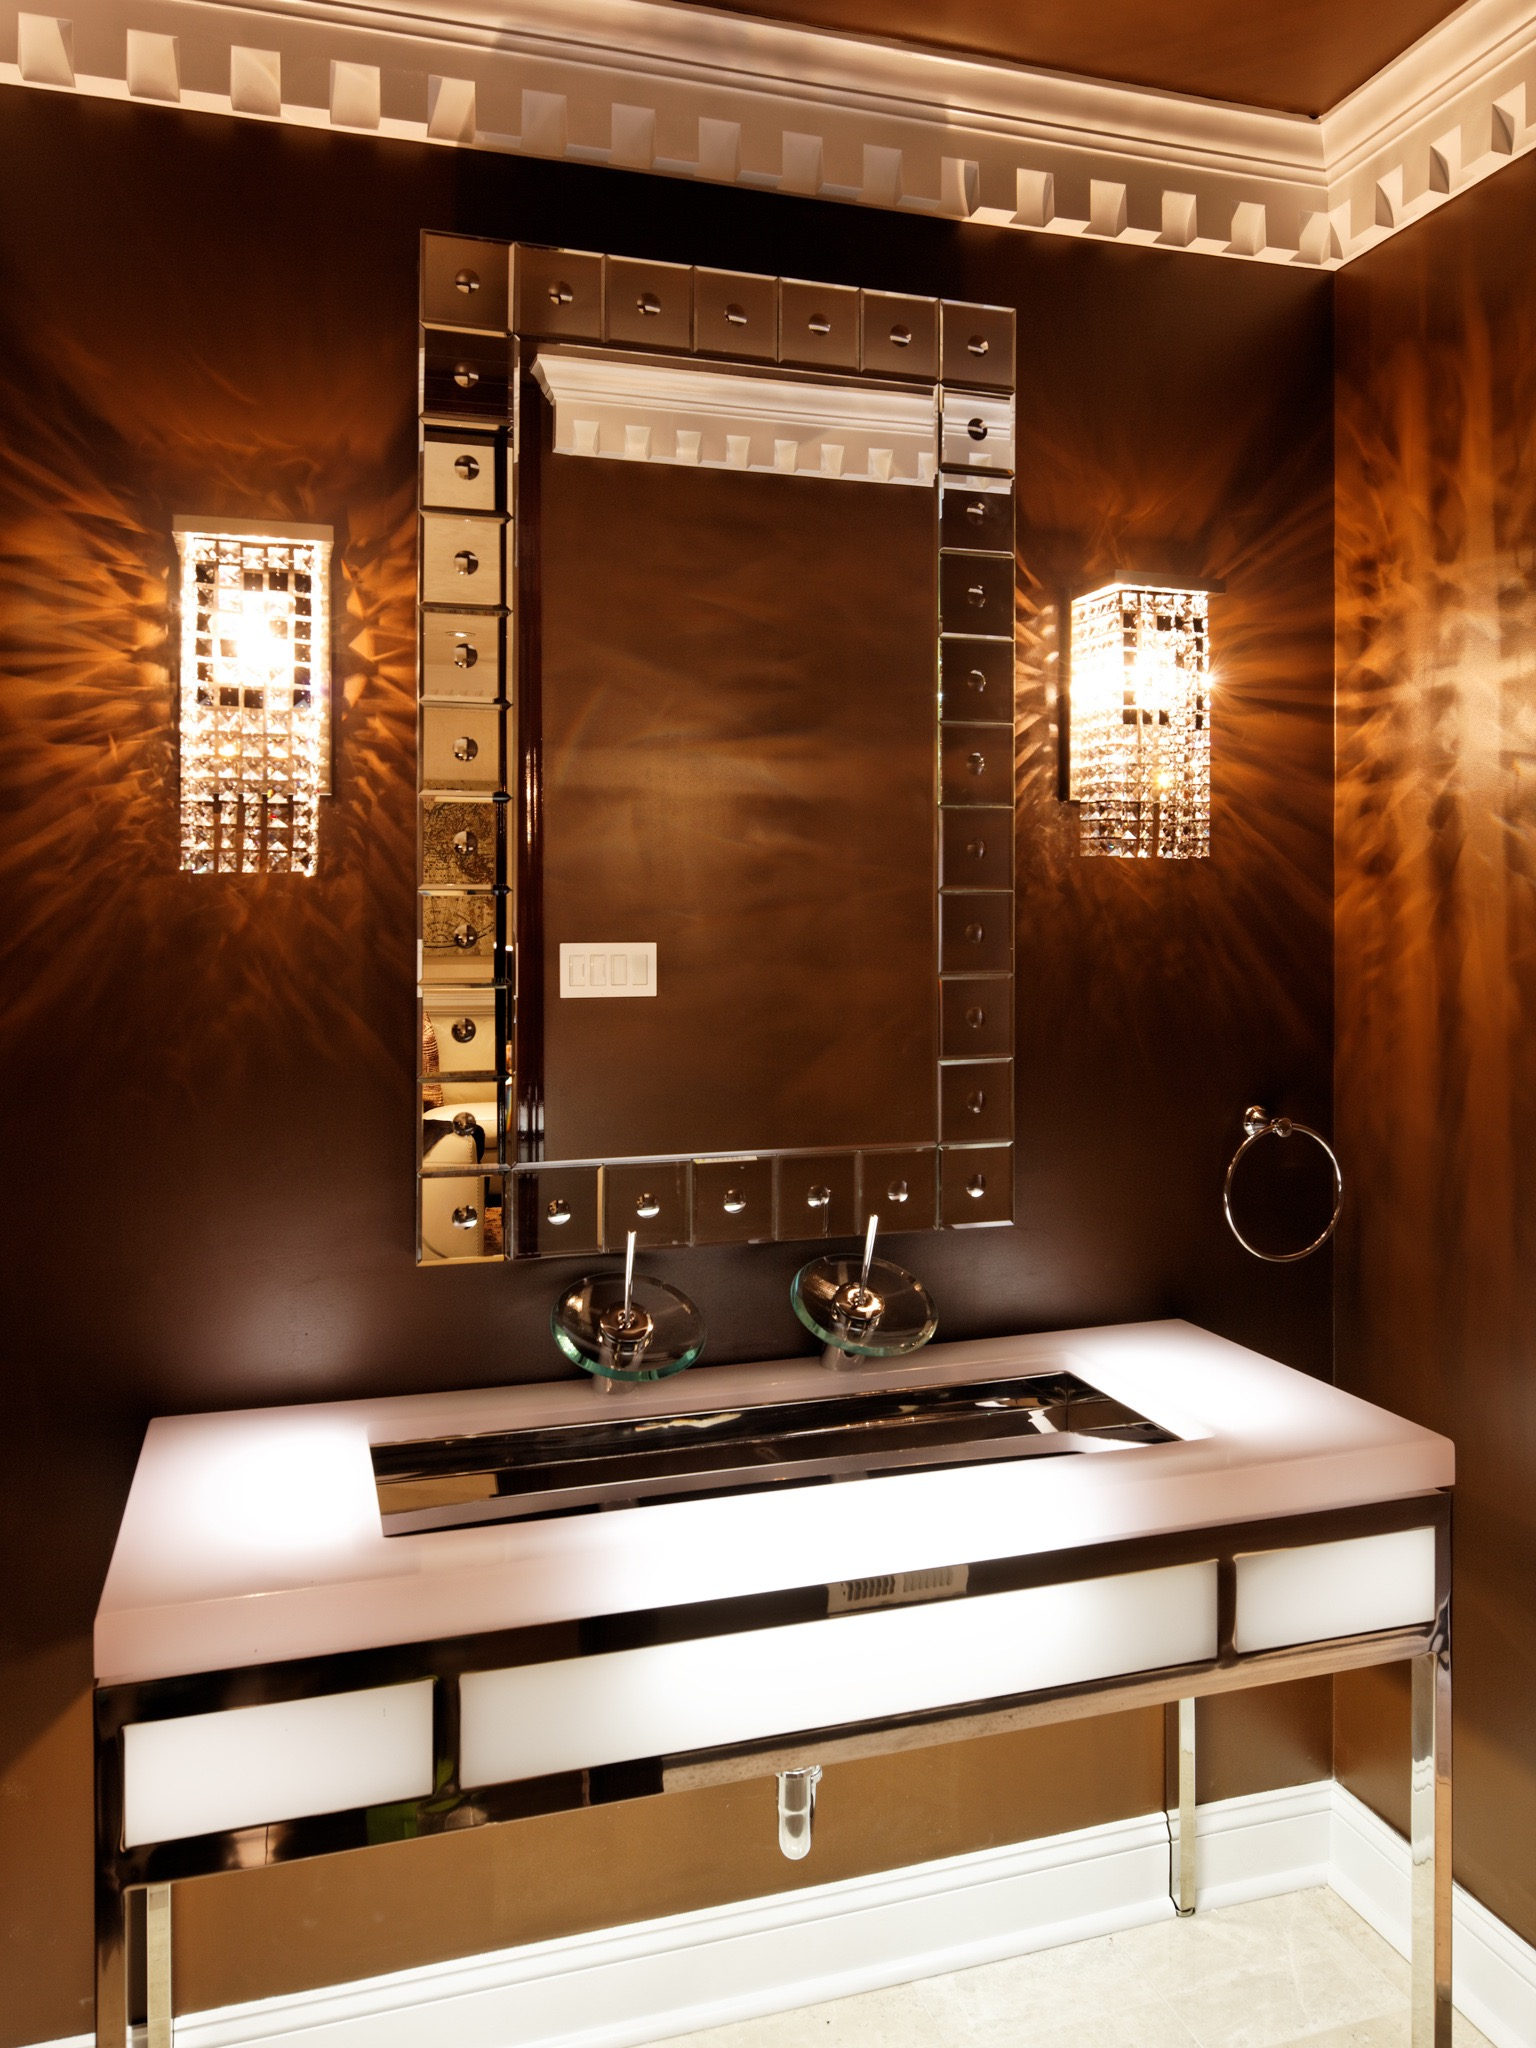 Square Beaded Sconces For Modern Glamour Bathroom (Image 17 of 19)